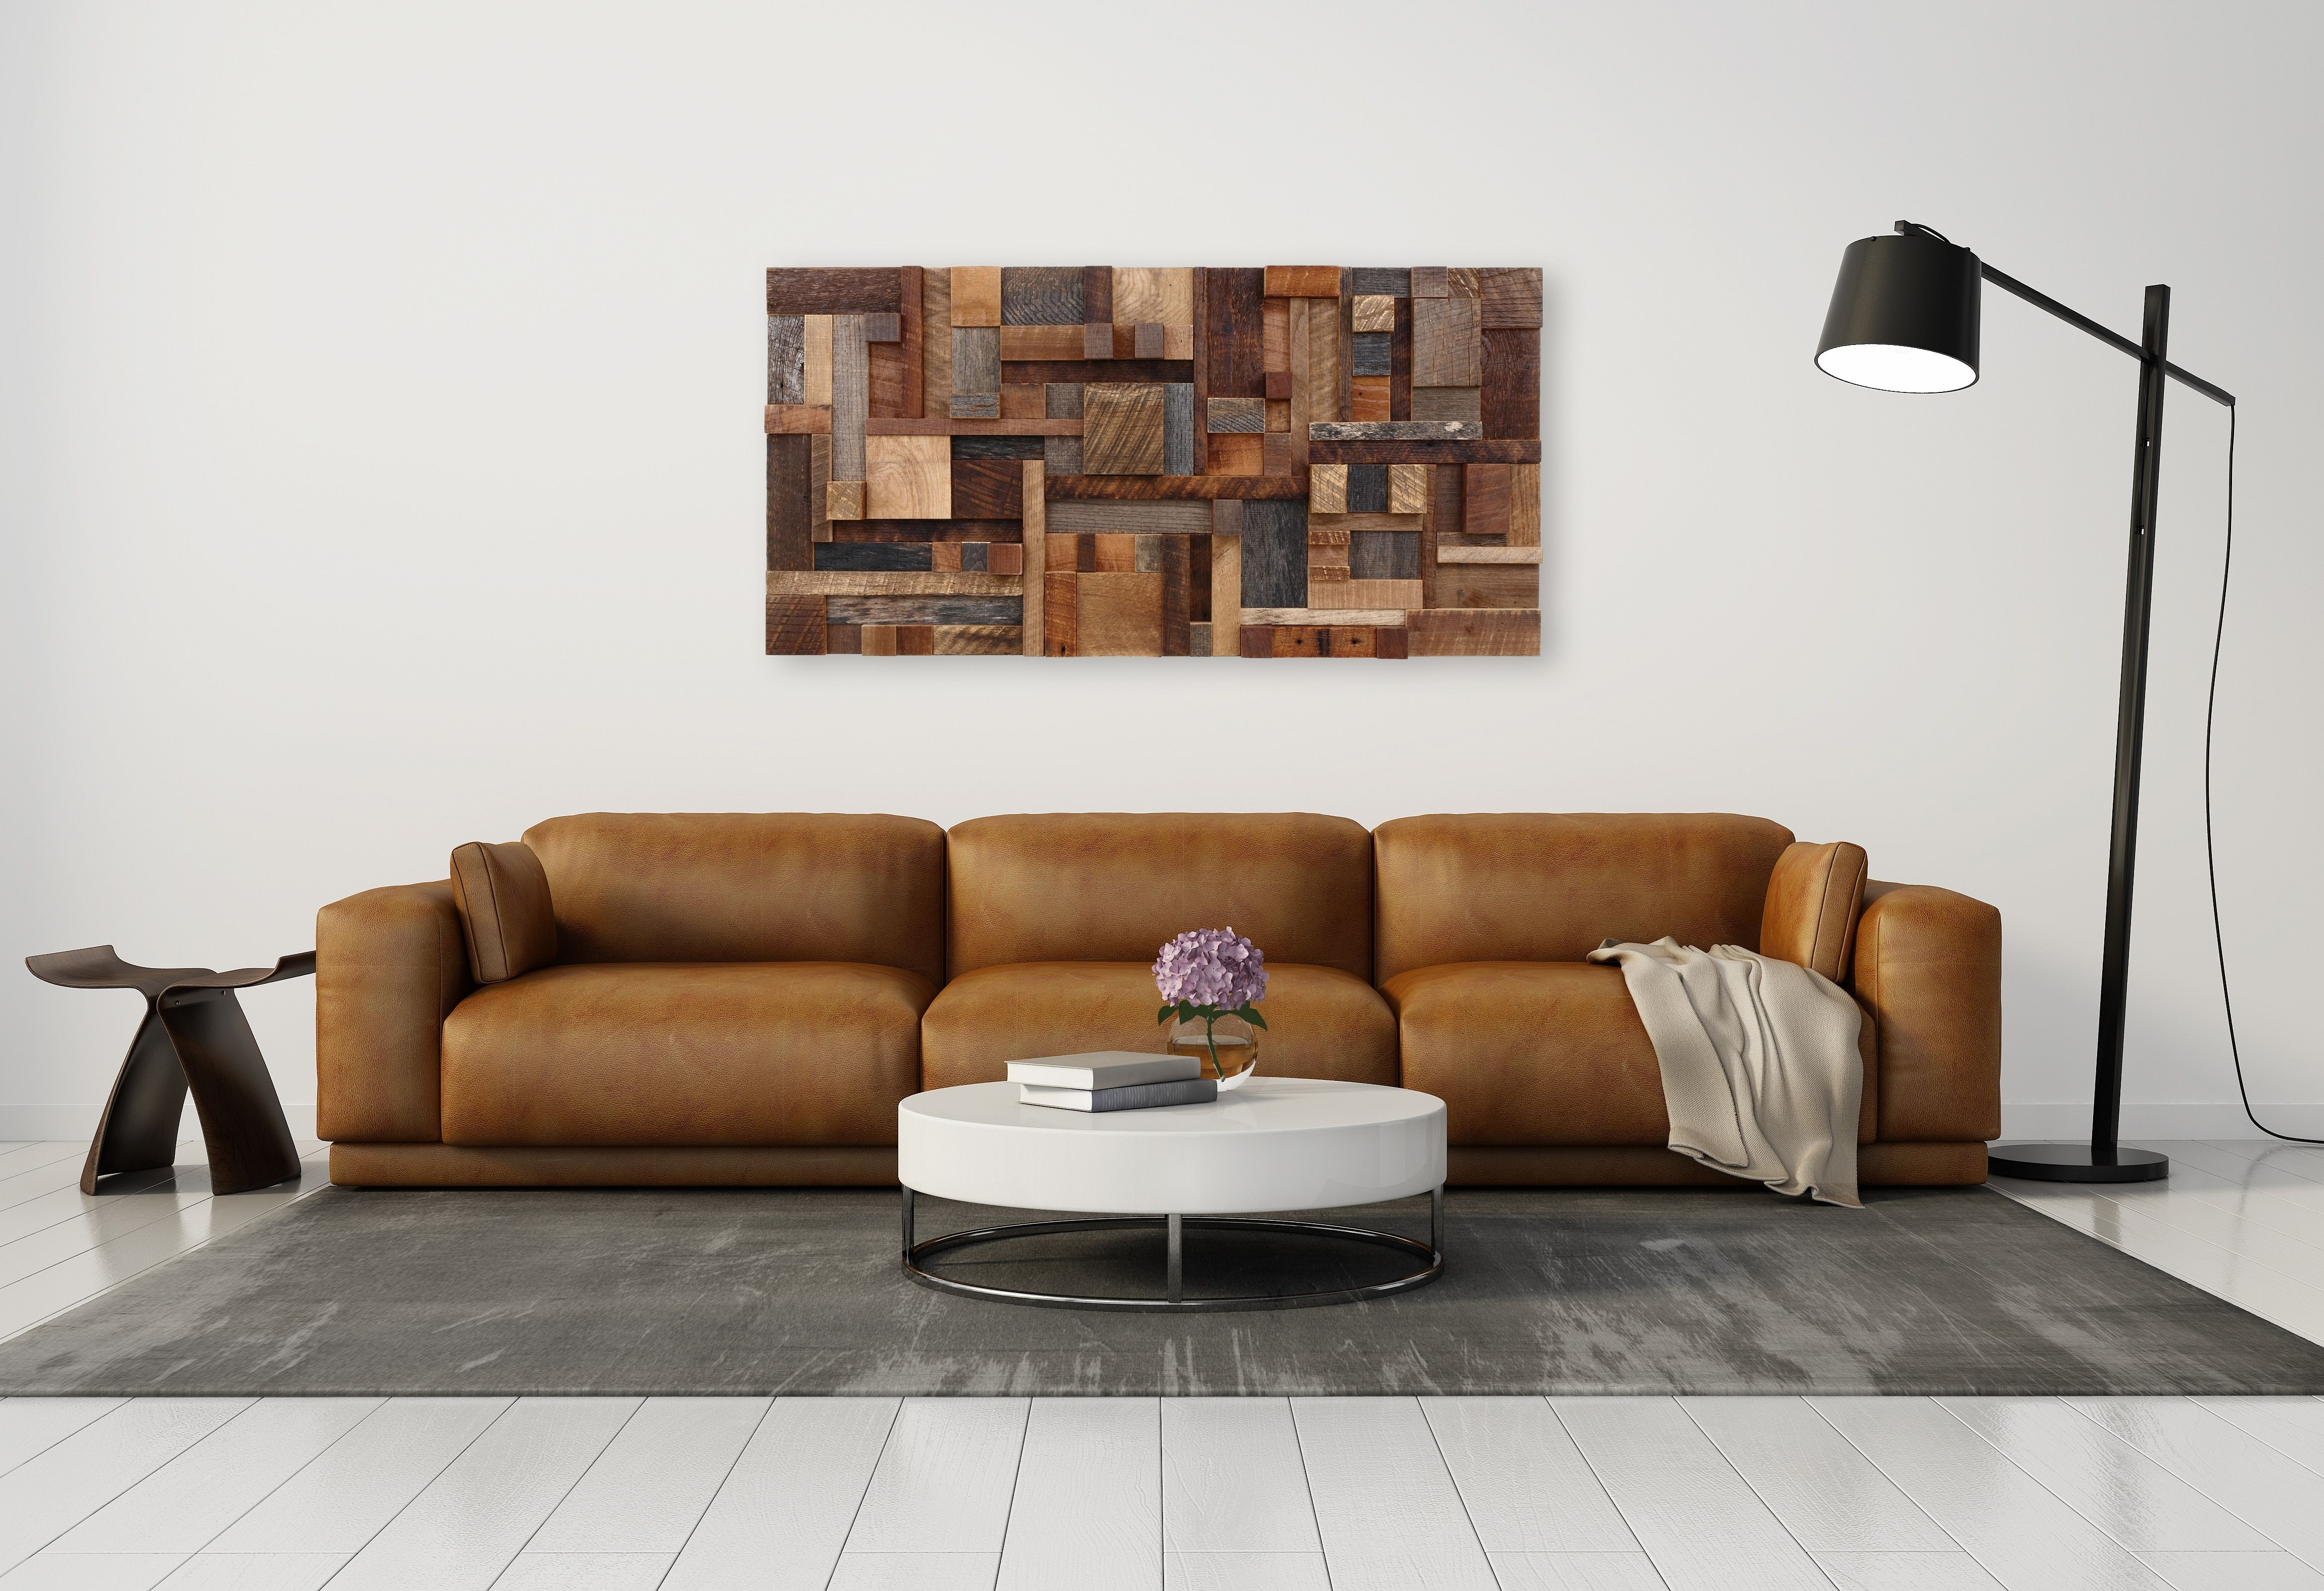 Hand Made Wood Wall Art Of Geometric Shapes, Made Of Reclaimed Within Well Known Geometric Shapes Wall Accents (View 9 of 15)